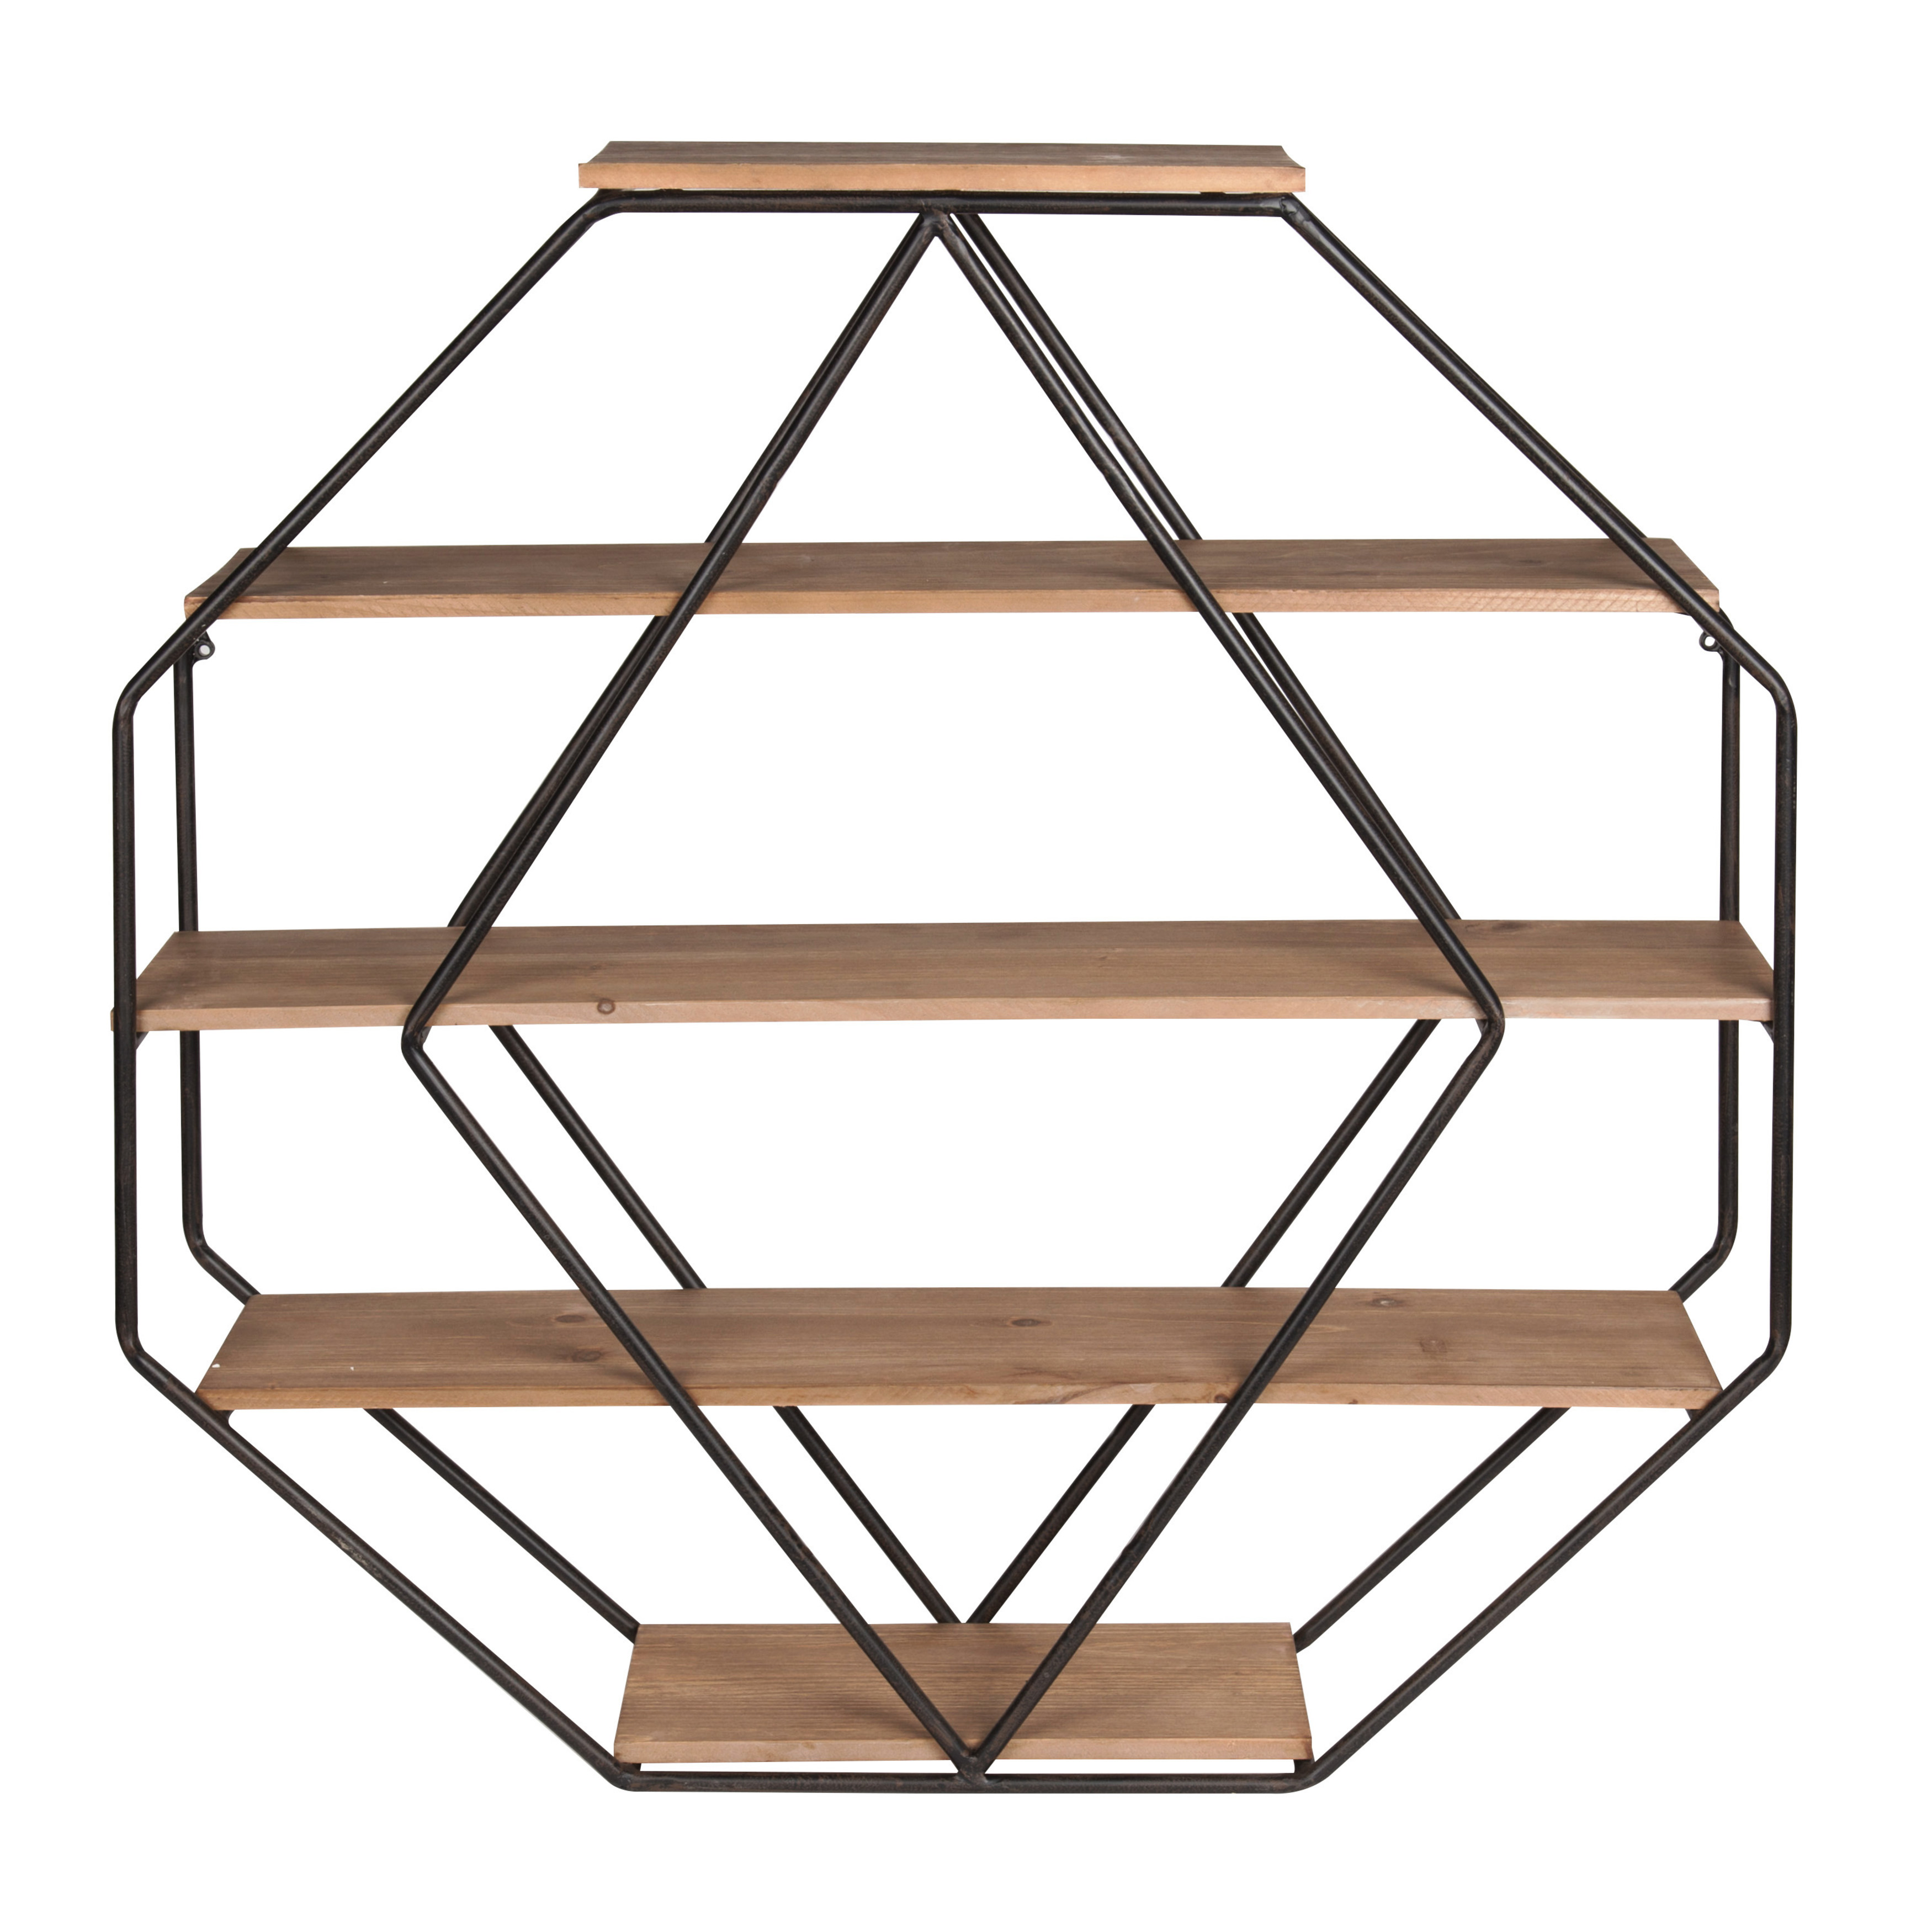 Kate and Laurel Lintz Large Octagon Shaped Floating Wood Book Shelves for Decorative Wall Display, Black Metal Frame with Rustic Brown Shelves